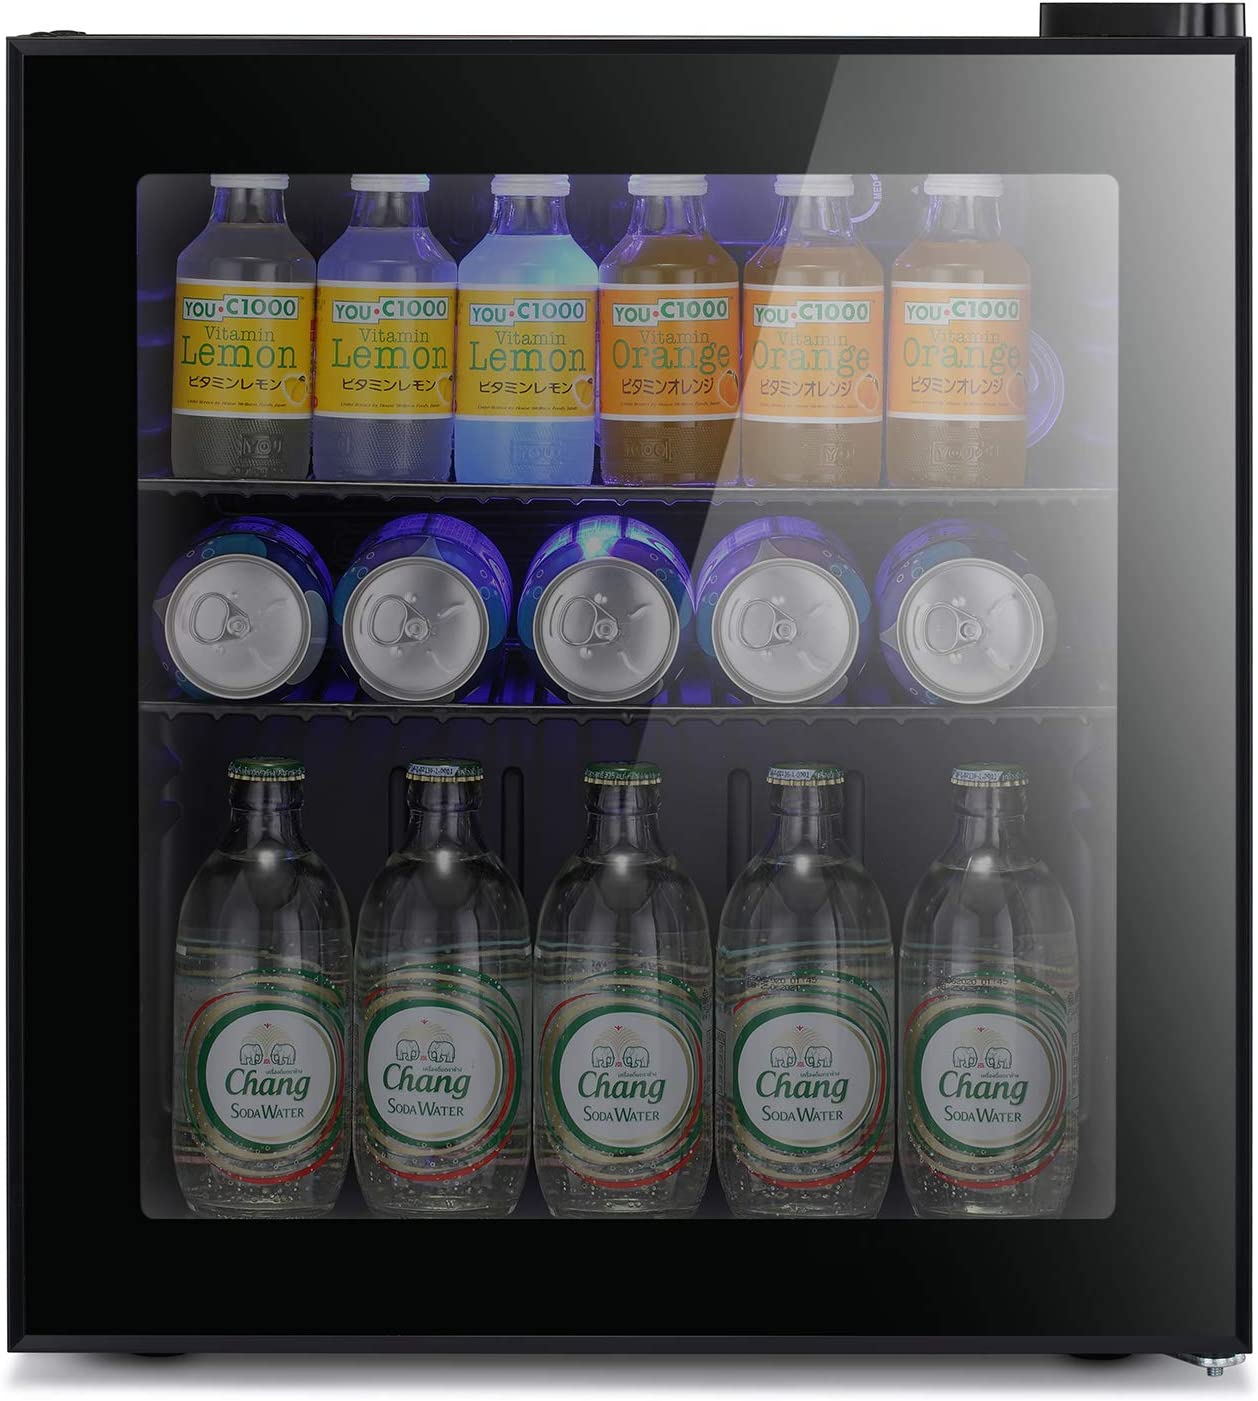 Antarctic Star Mini Fridge Cooler - 60 Can Beverage Refrigerator Glass Door for Beer Soda or Wine – Glass Door Small Drink Dispenser Machine Black Glass Removable for Home, Office or Bar, 1.6cu.ft.